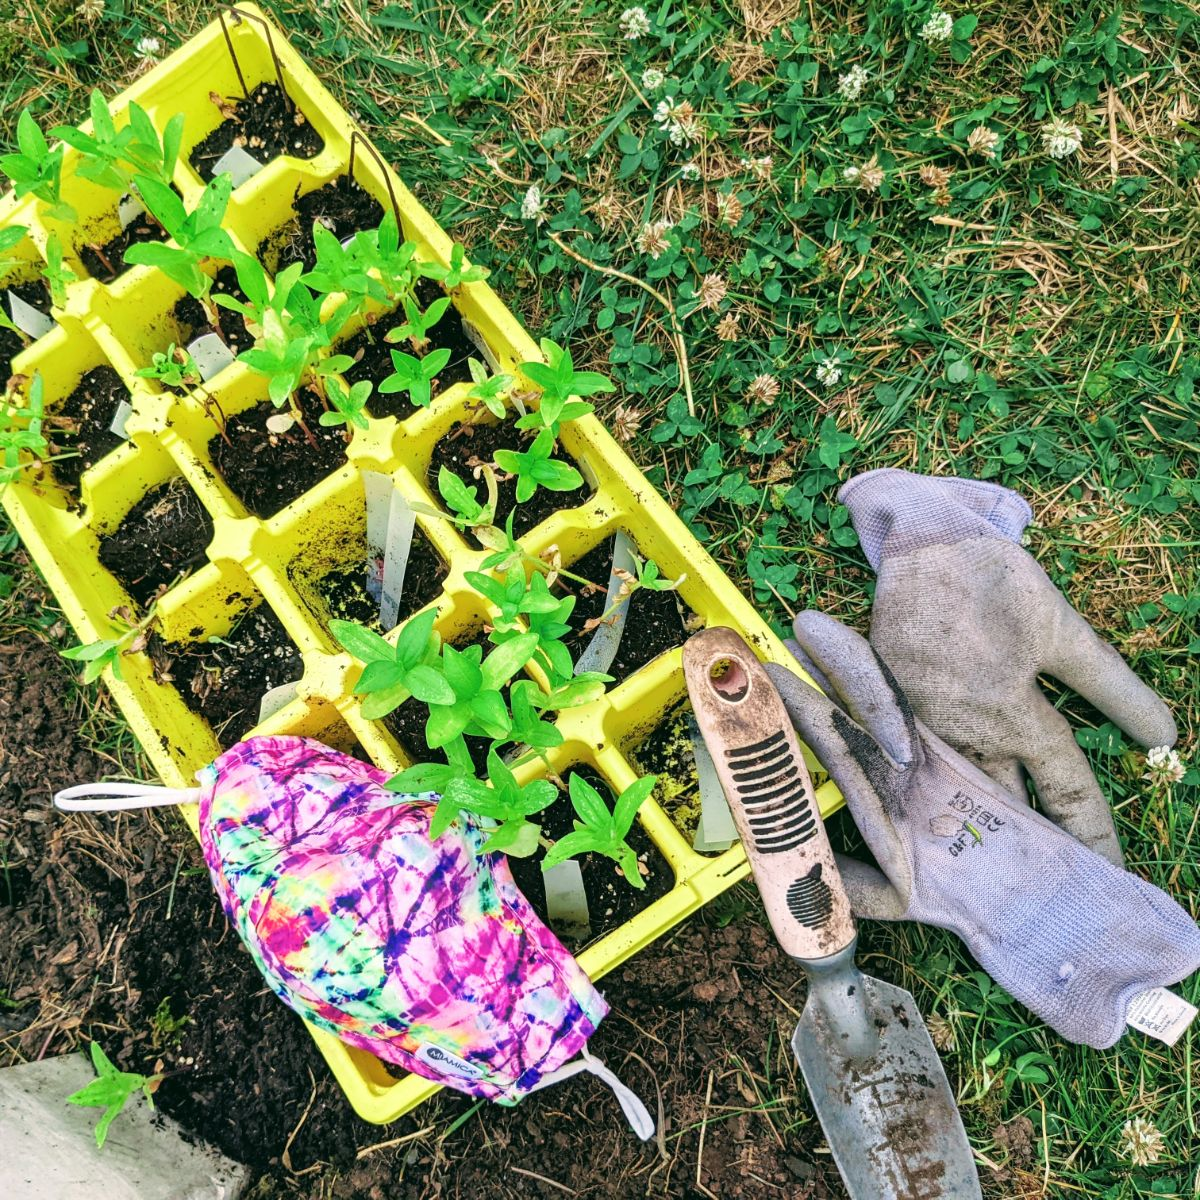 Surviving Quarantine - Bunny's Garden